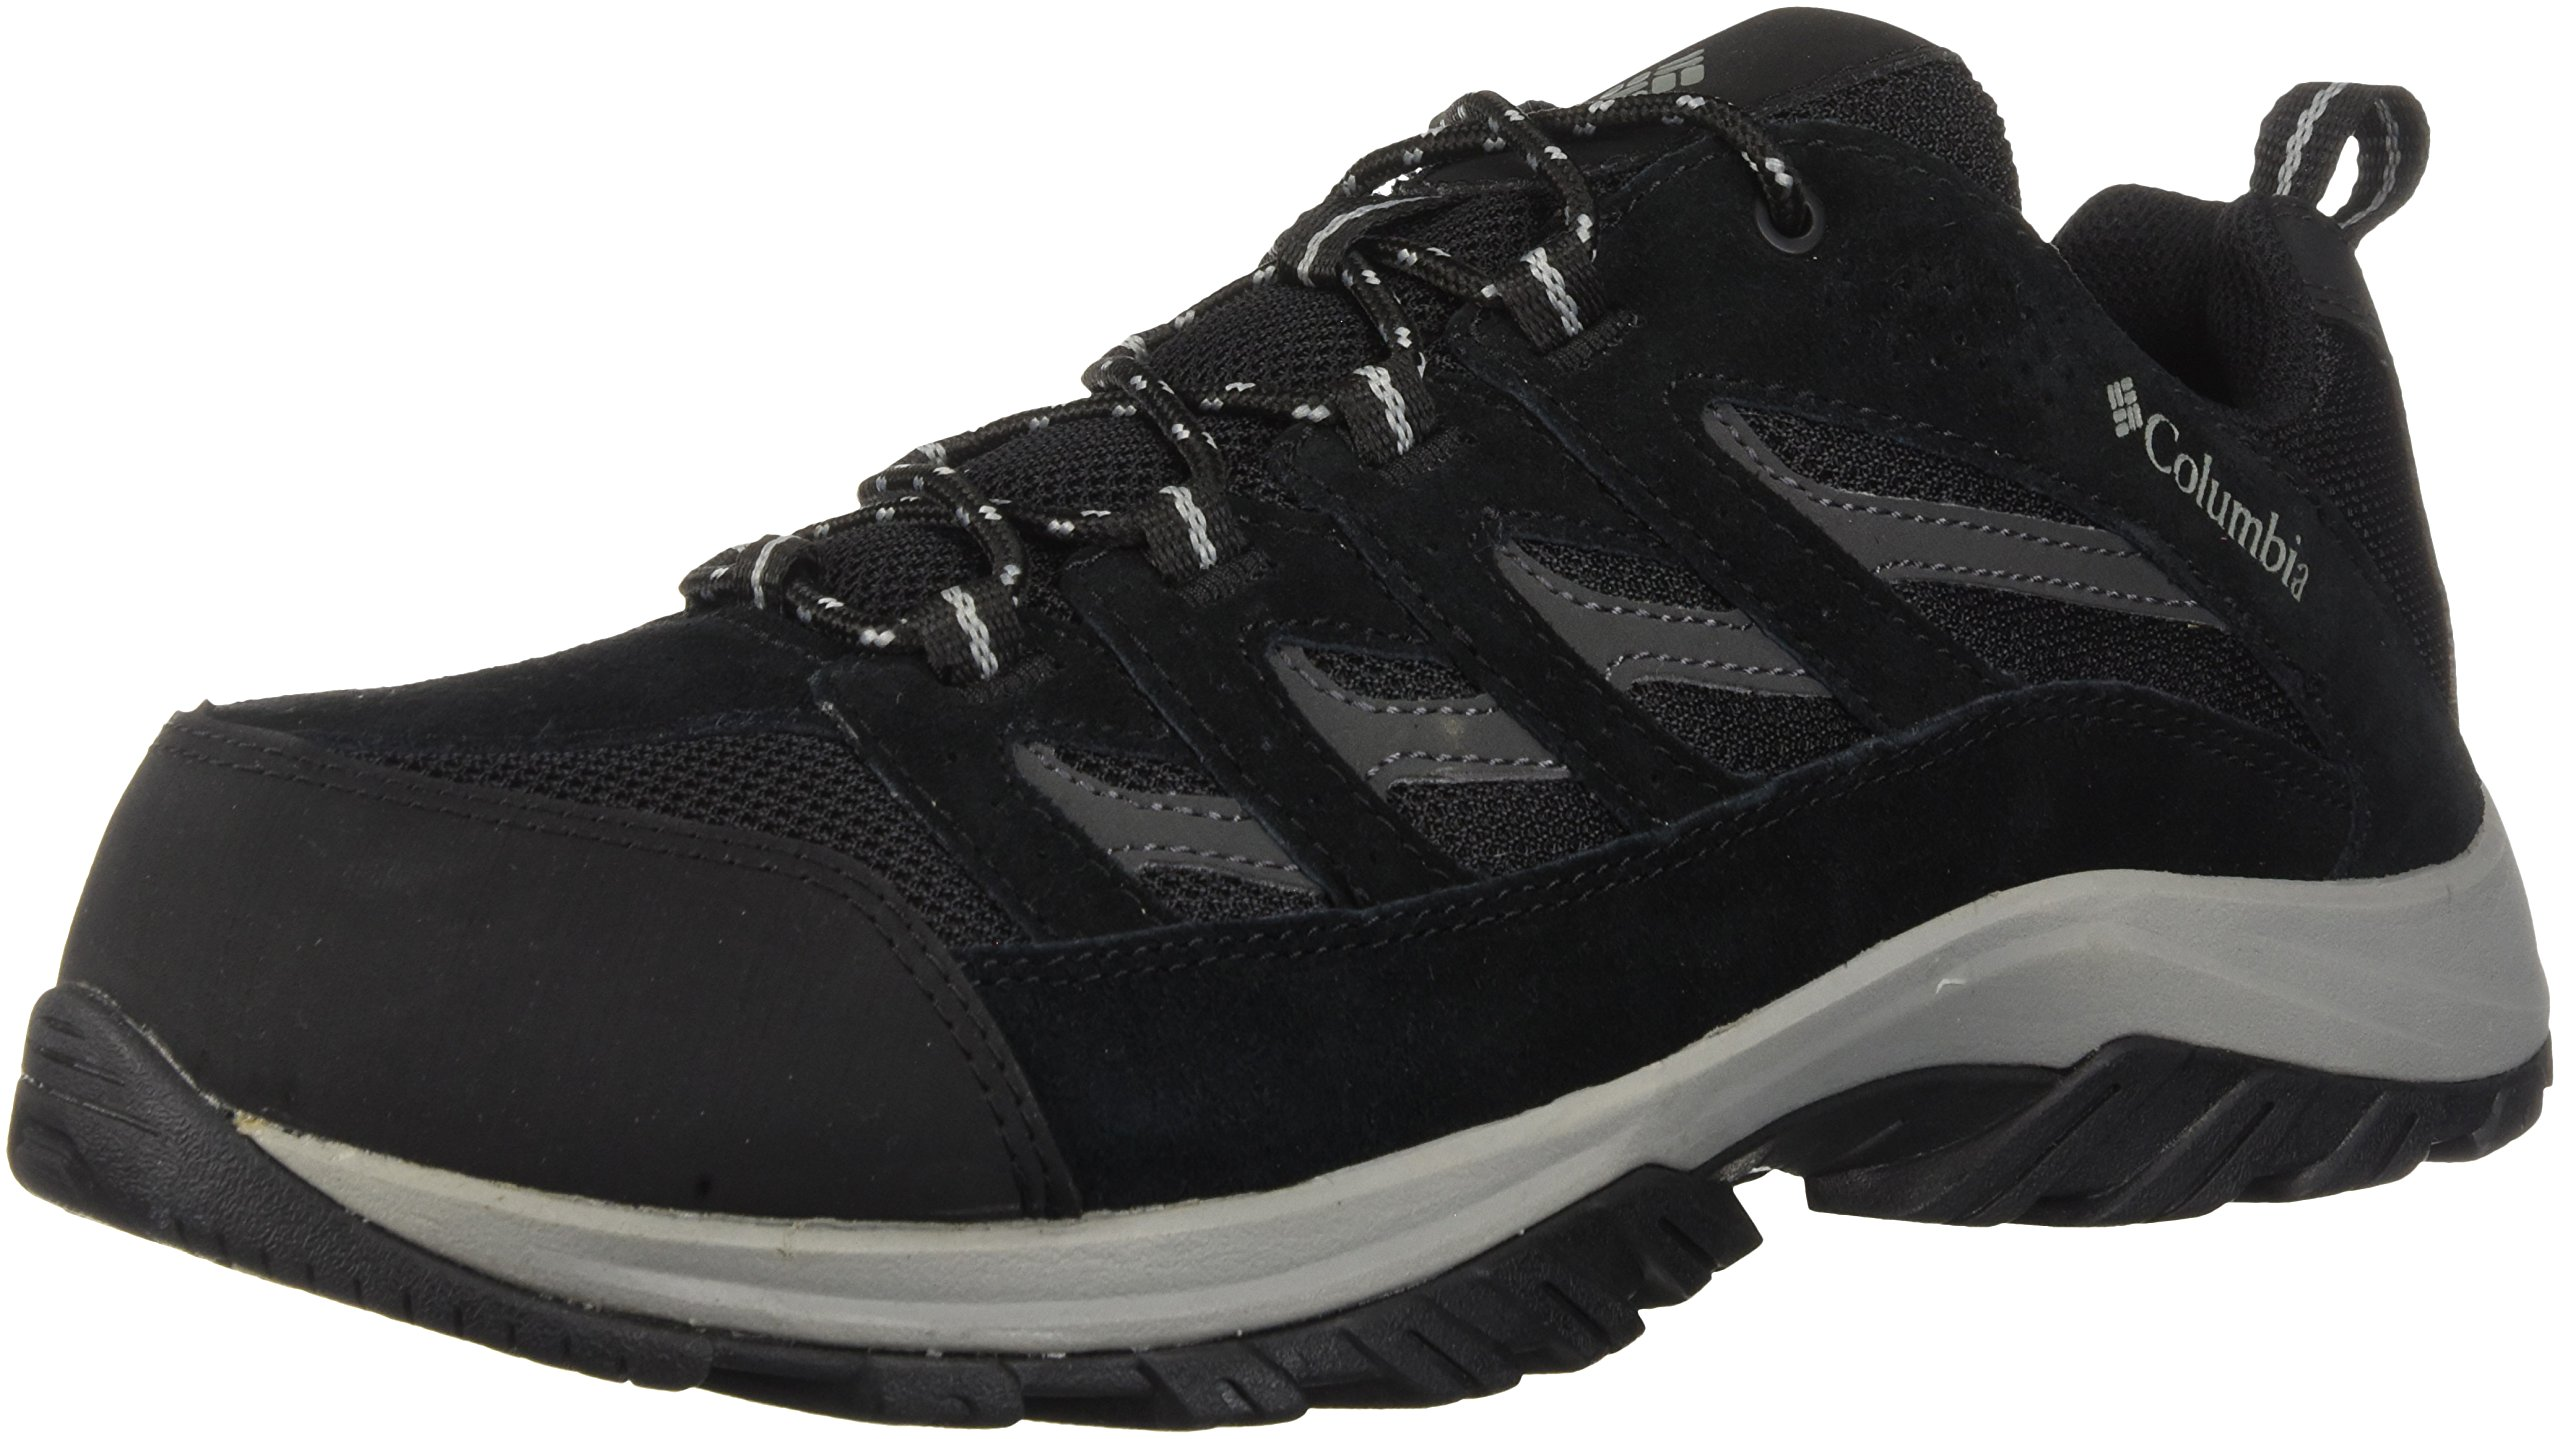 Columbia Men's Crestwood Wide Hiking Shoe, Black, Grey, 13 US